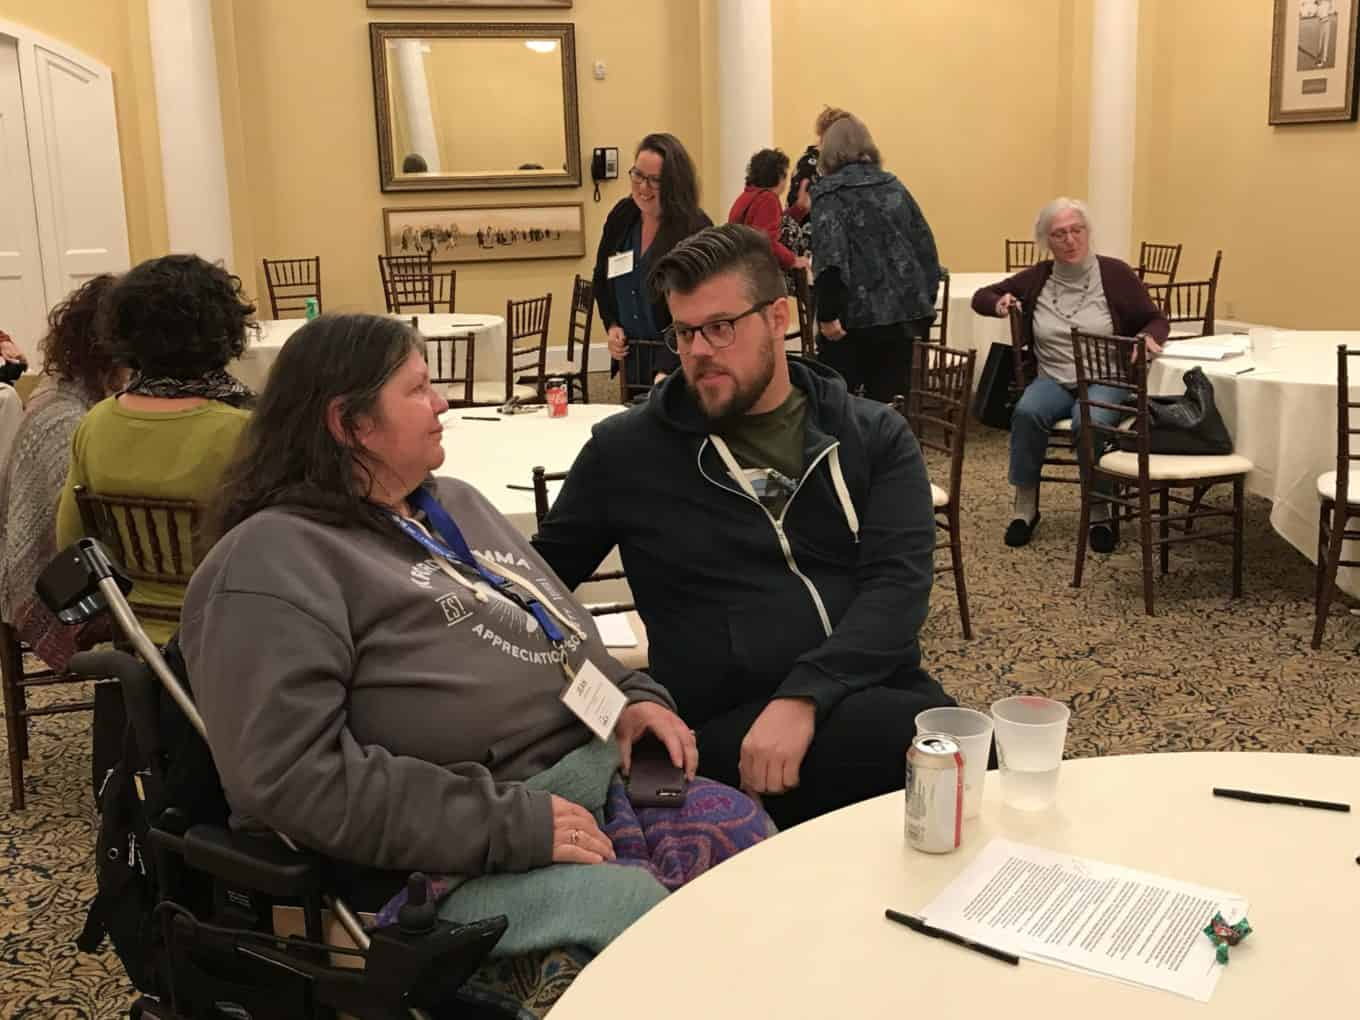 A man talks to a woman sitting in a wheelchair, they're talking about Medicaid transformation